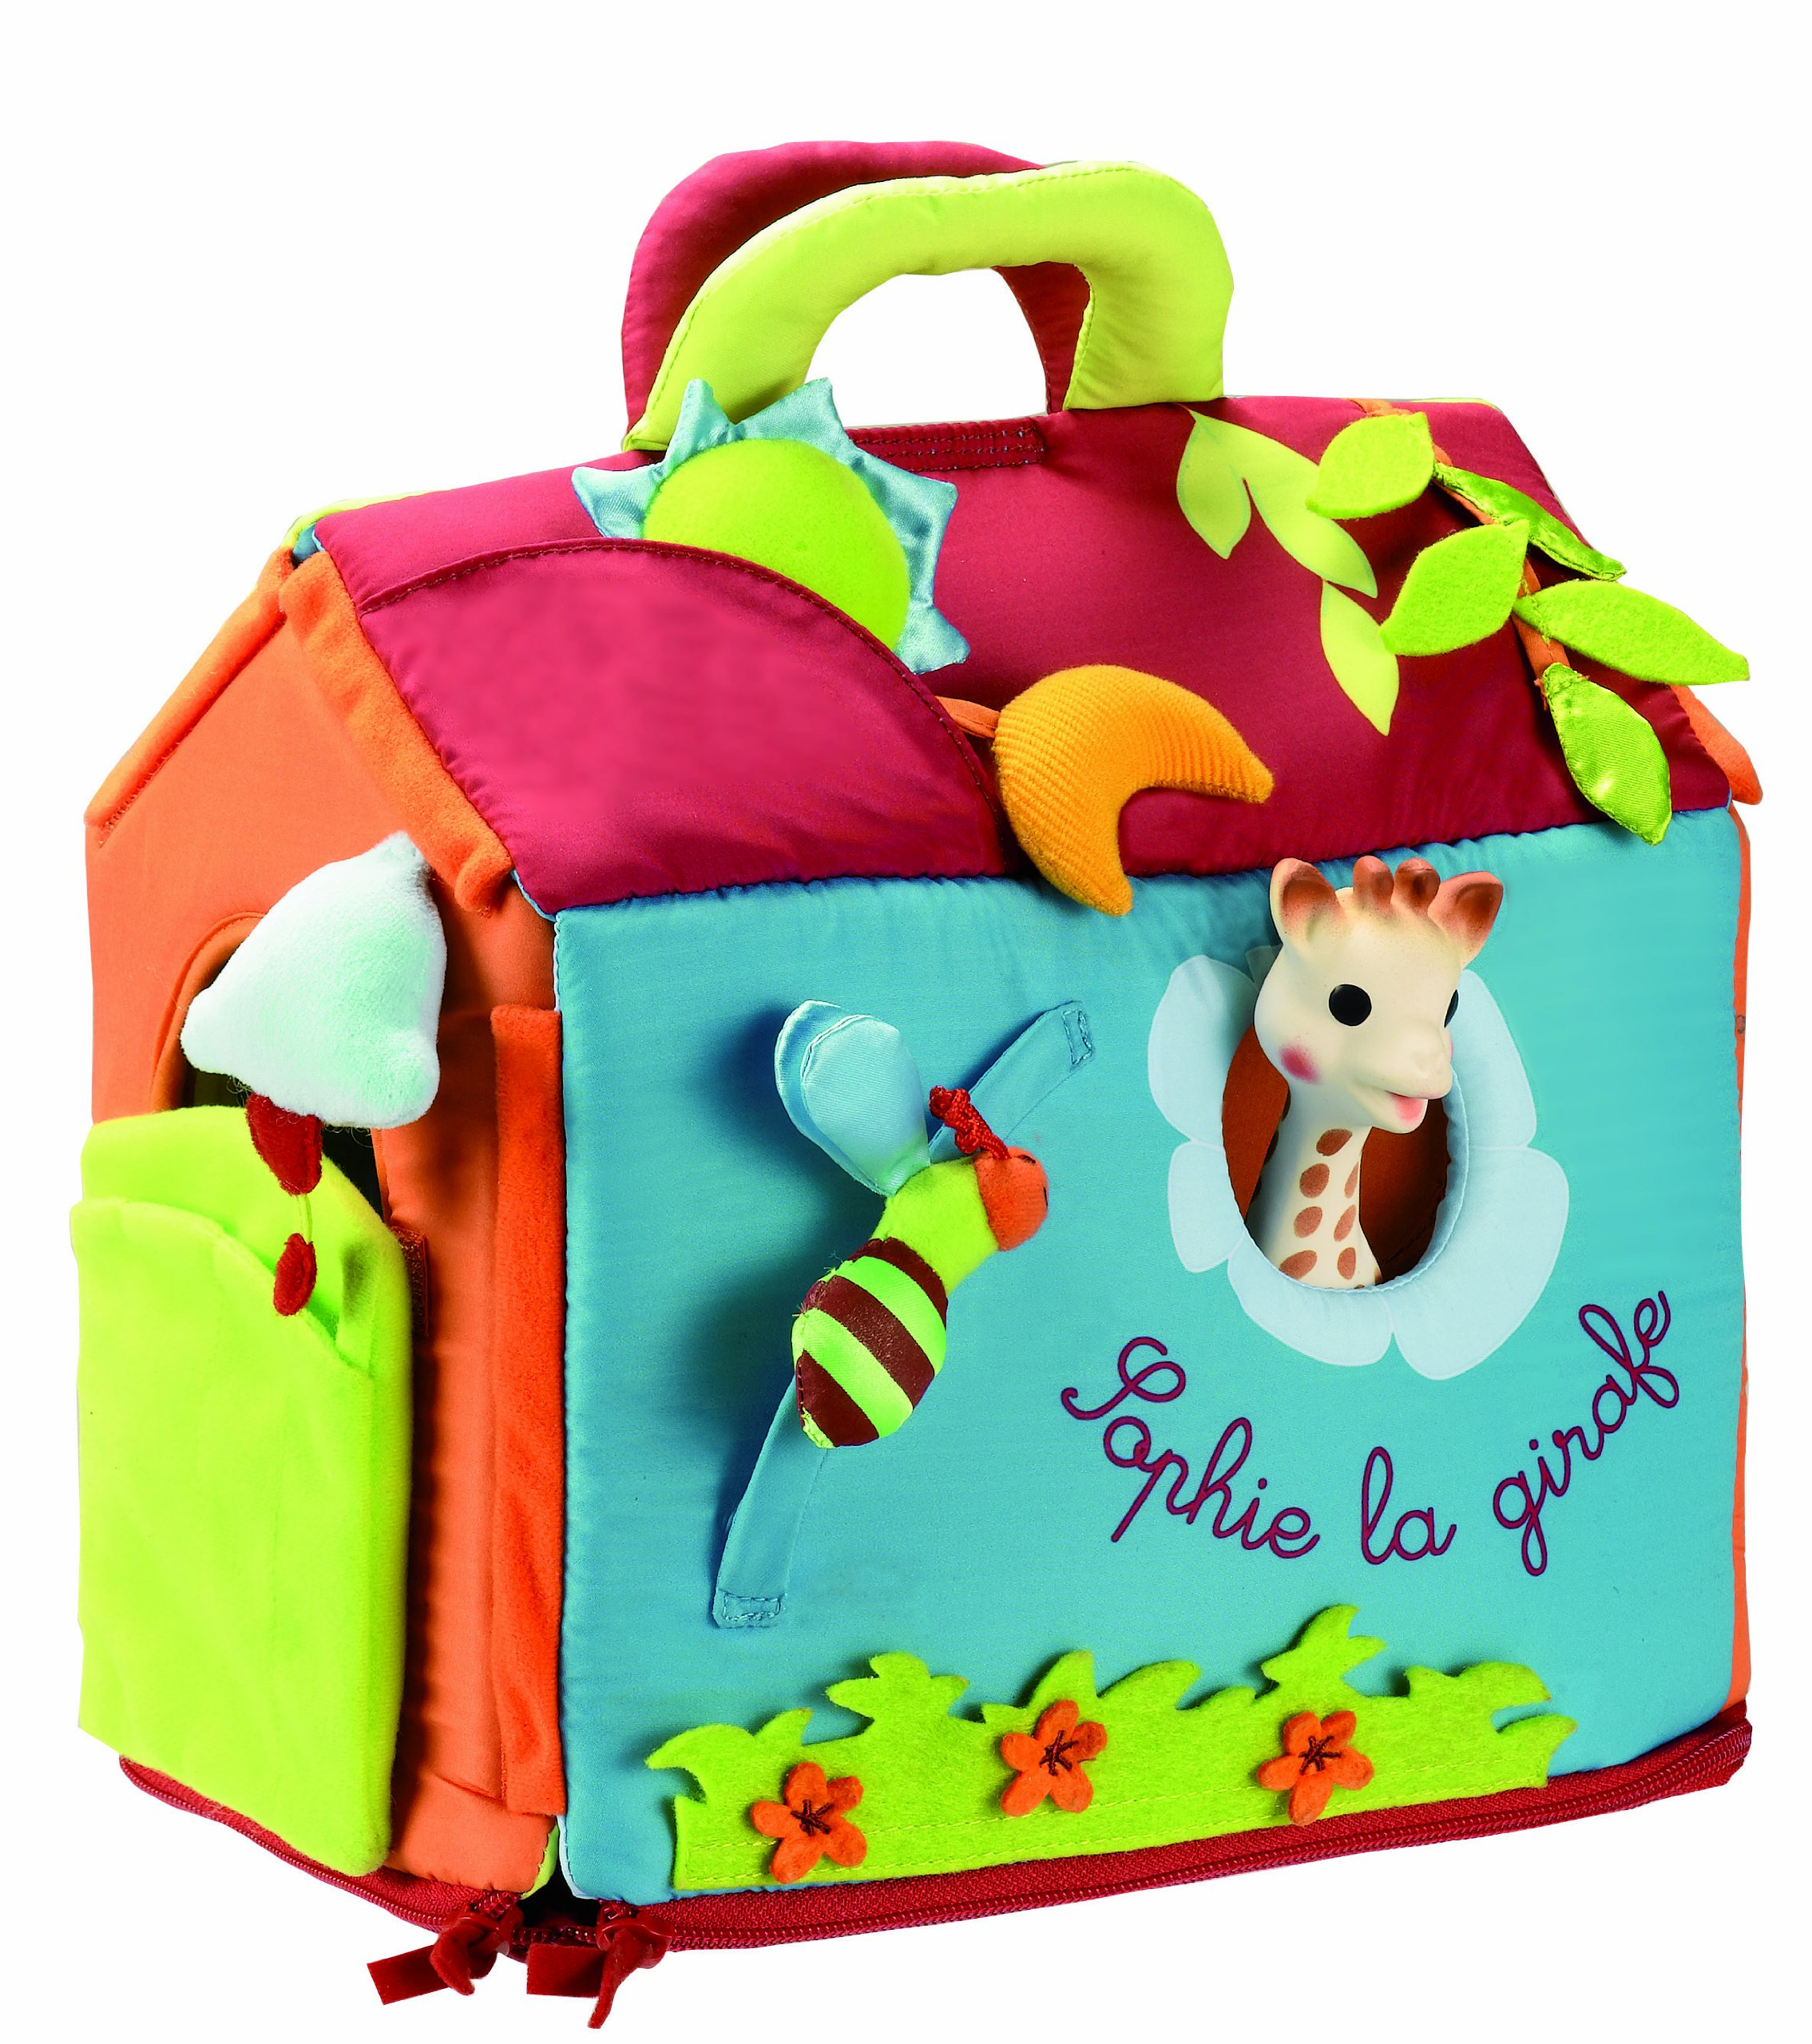 Vulli Sophie Giraffe House (Includes Sophie) by Vulli